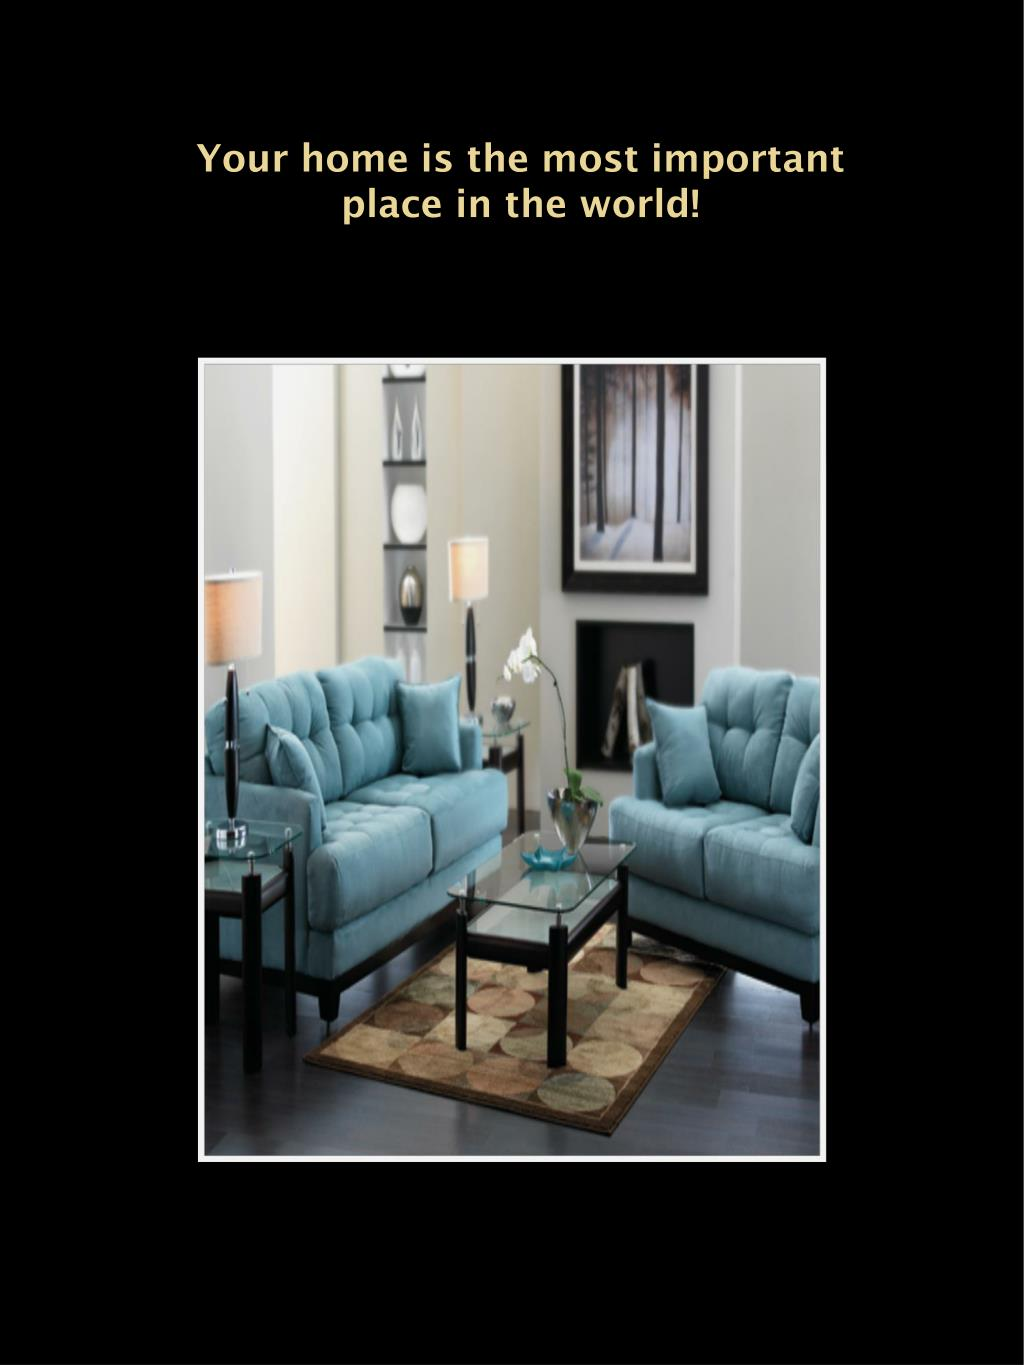 Your home is the most important place in the world!